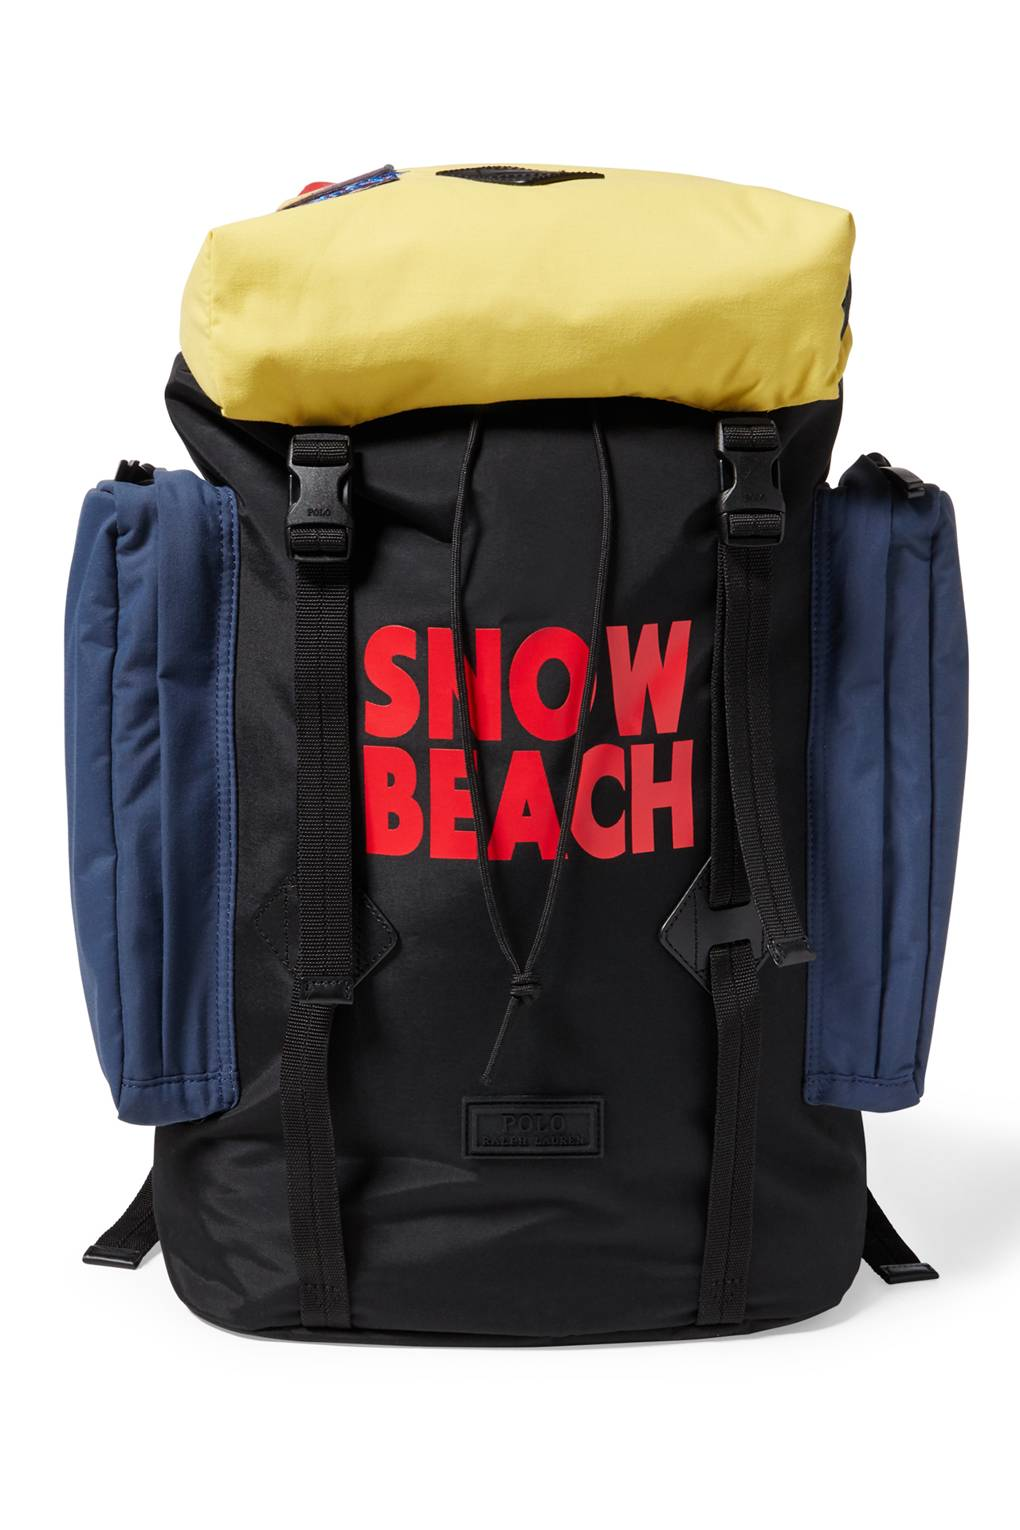 1f03916384c0 Every item in the Ralph Lauren Snow Beach collection